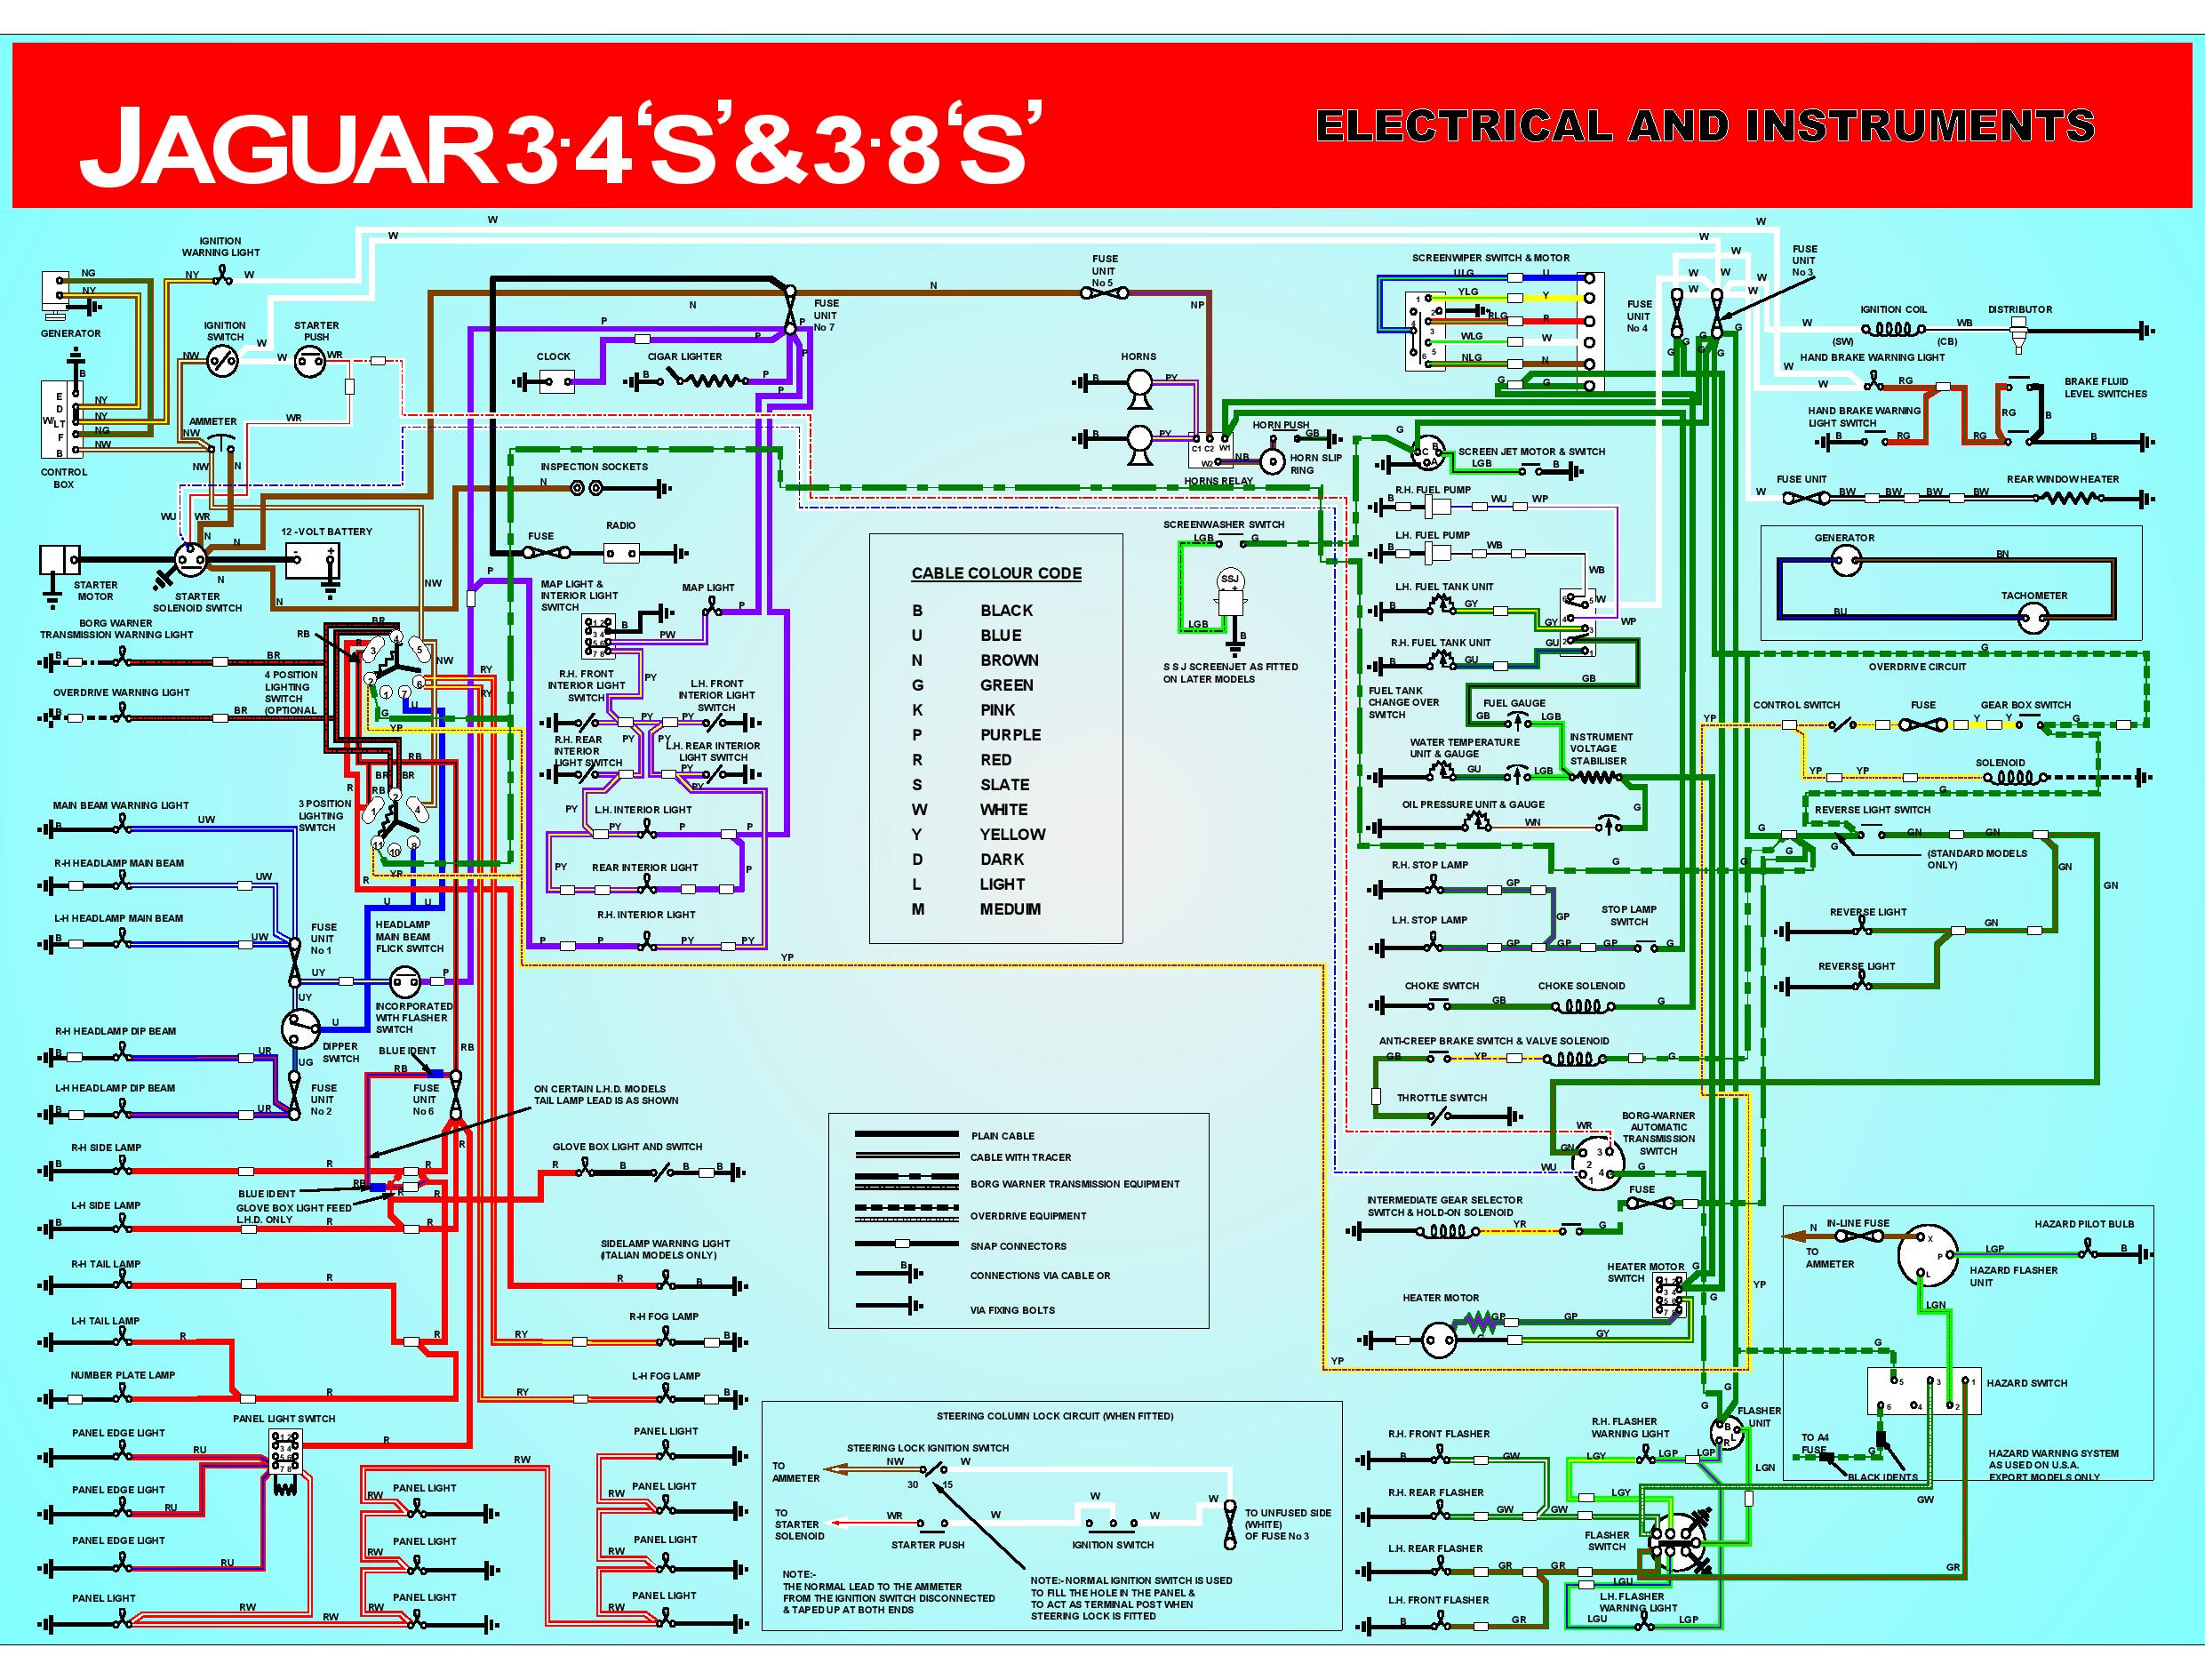 Jaguar Wiring | Images of Wiring Diagrams on